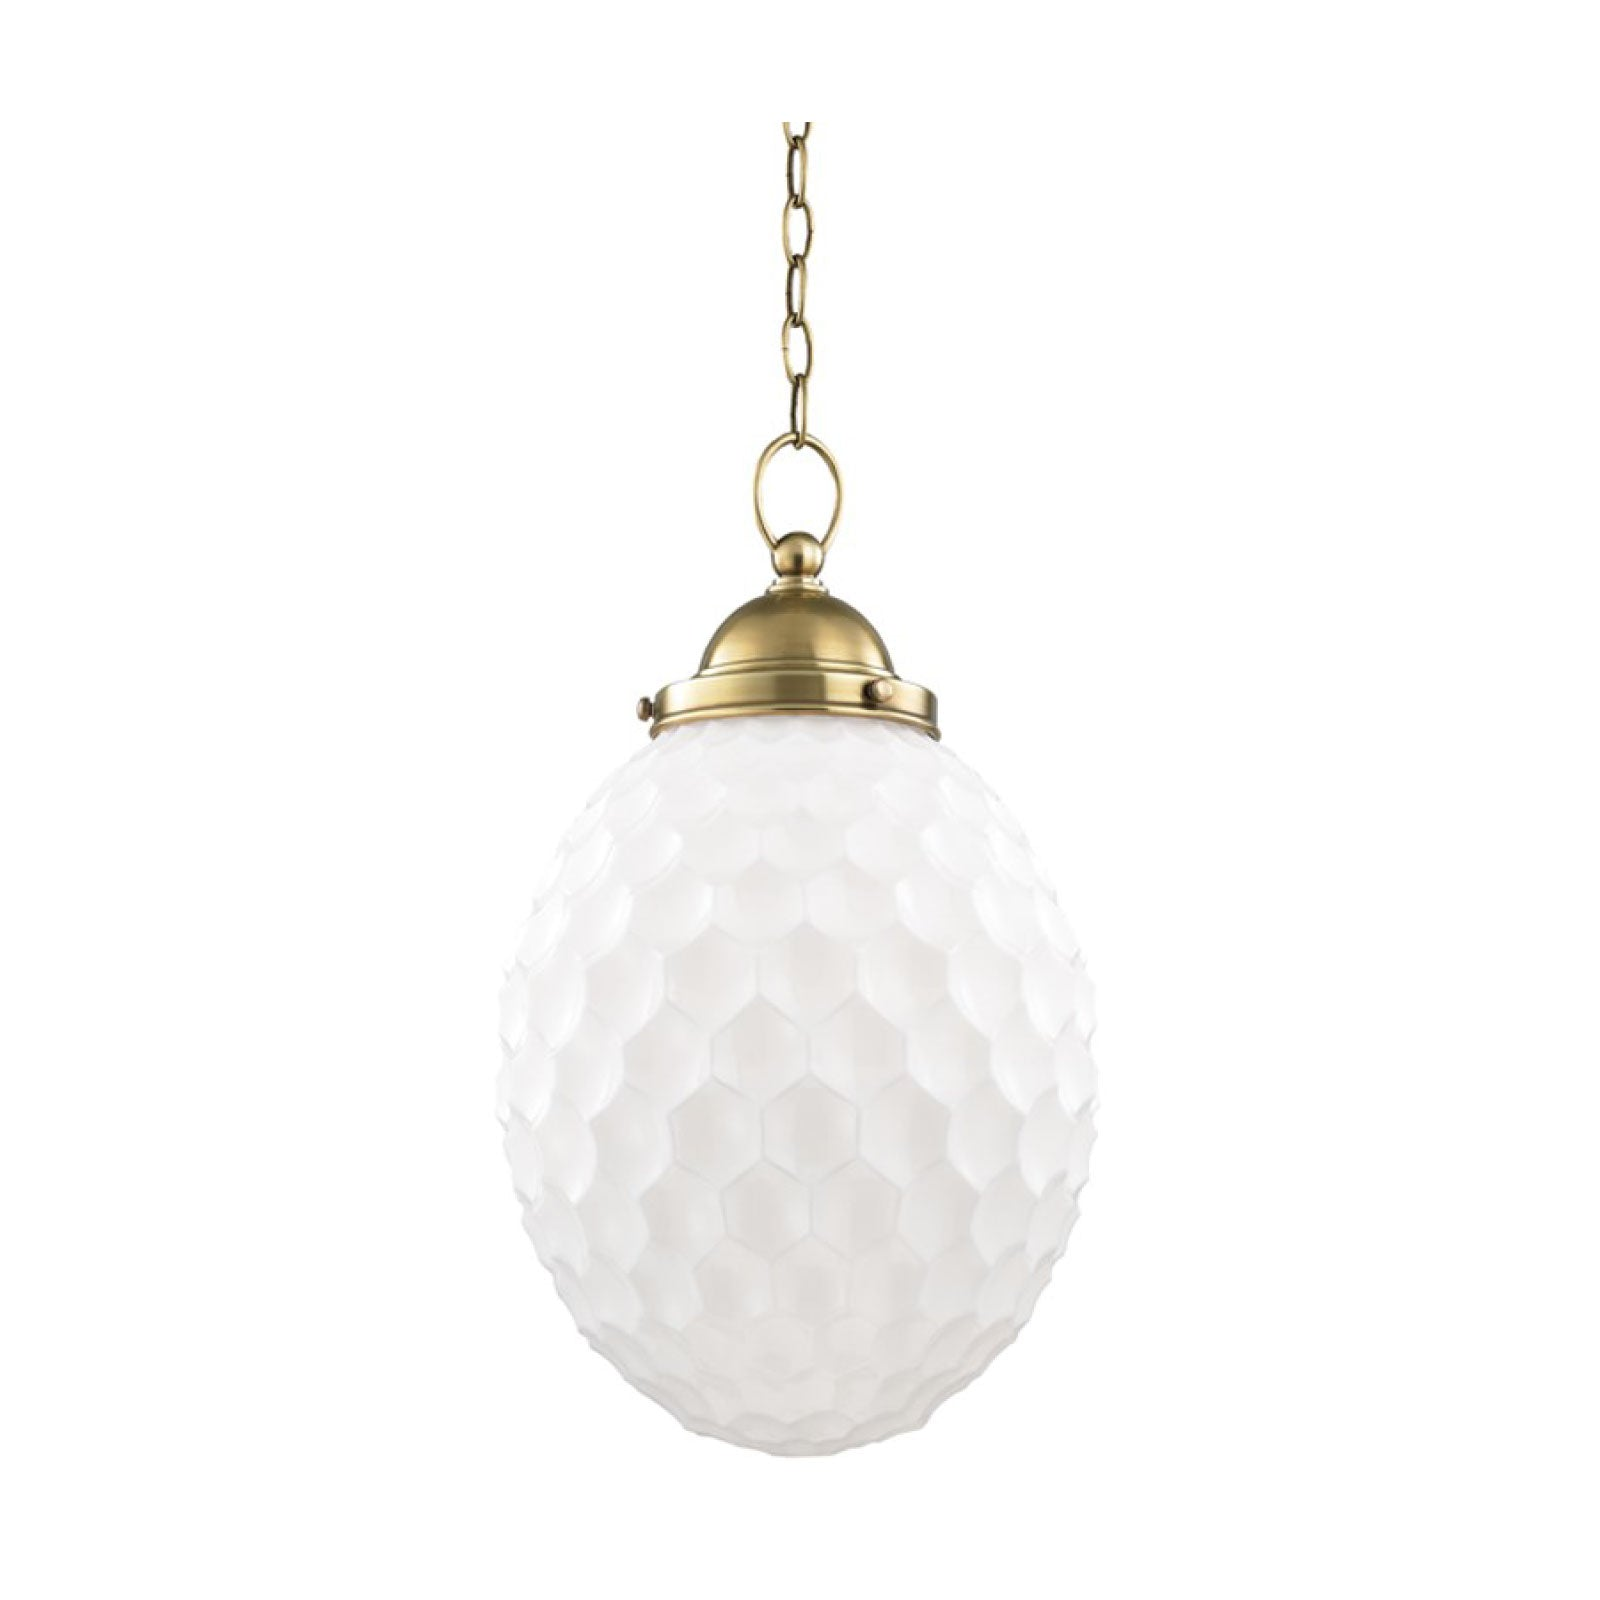 Montpellier Pendant in Brass